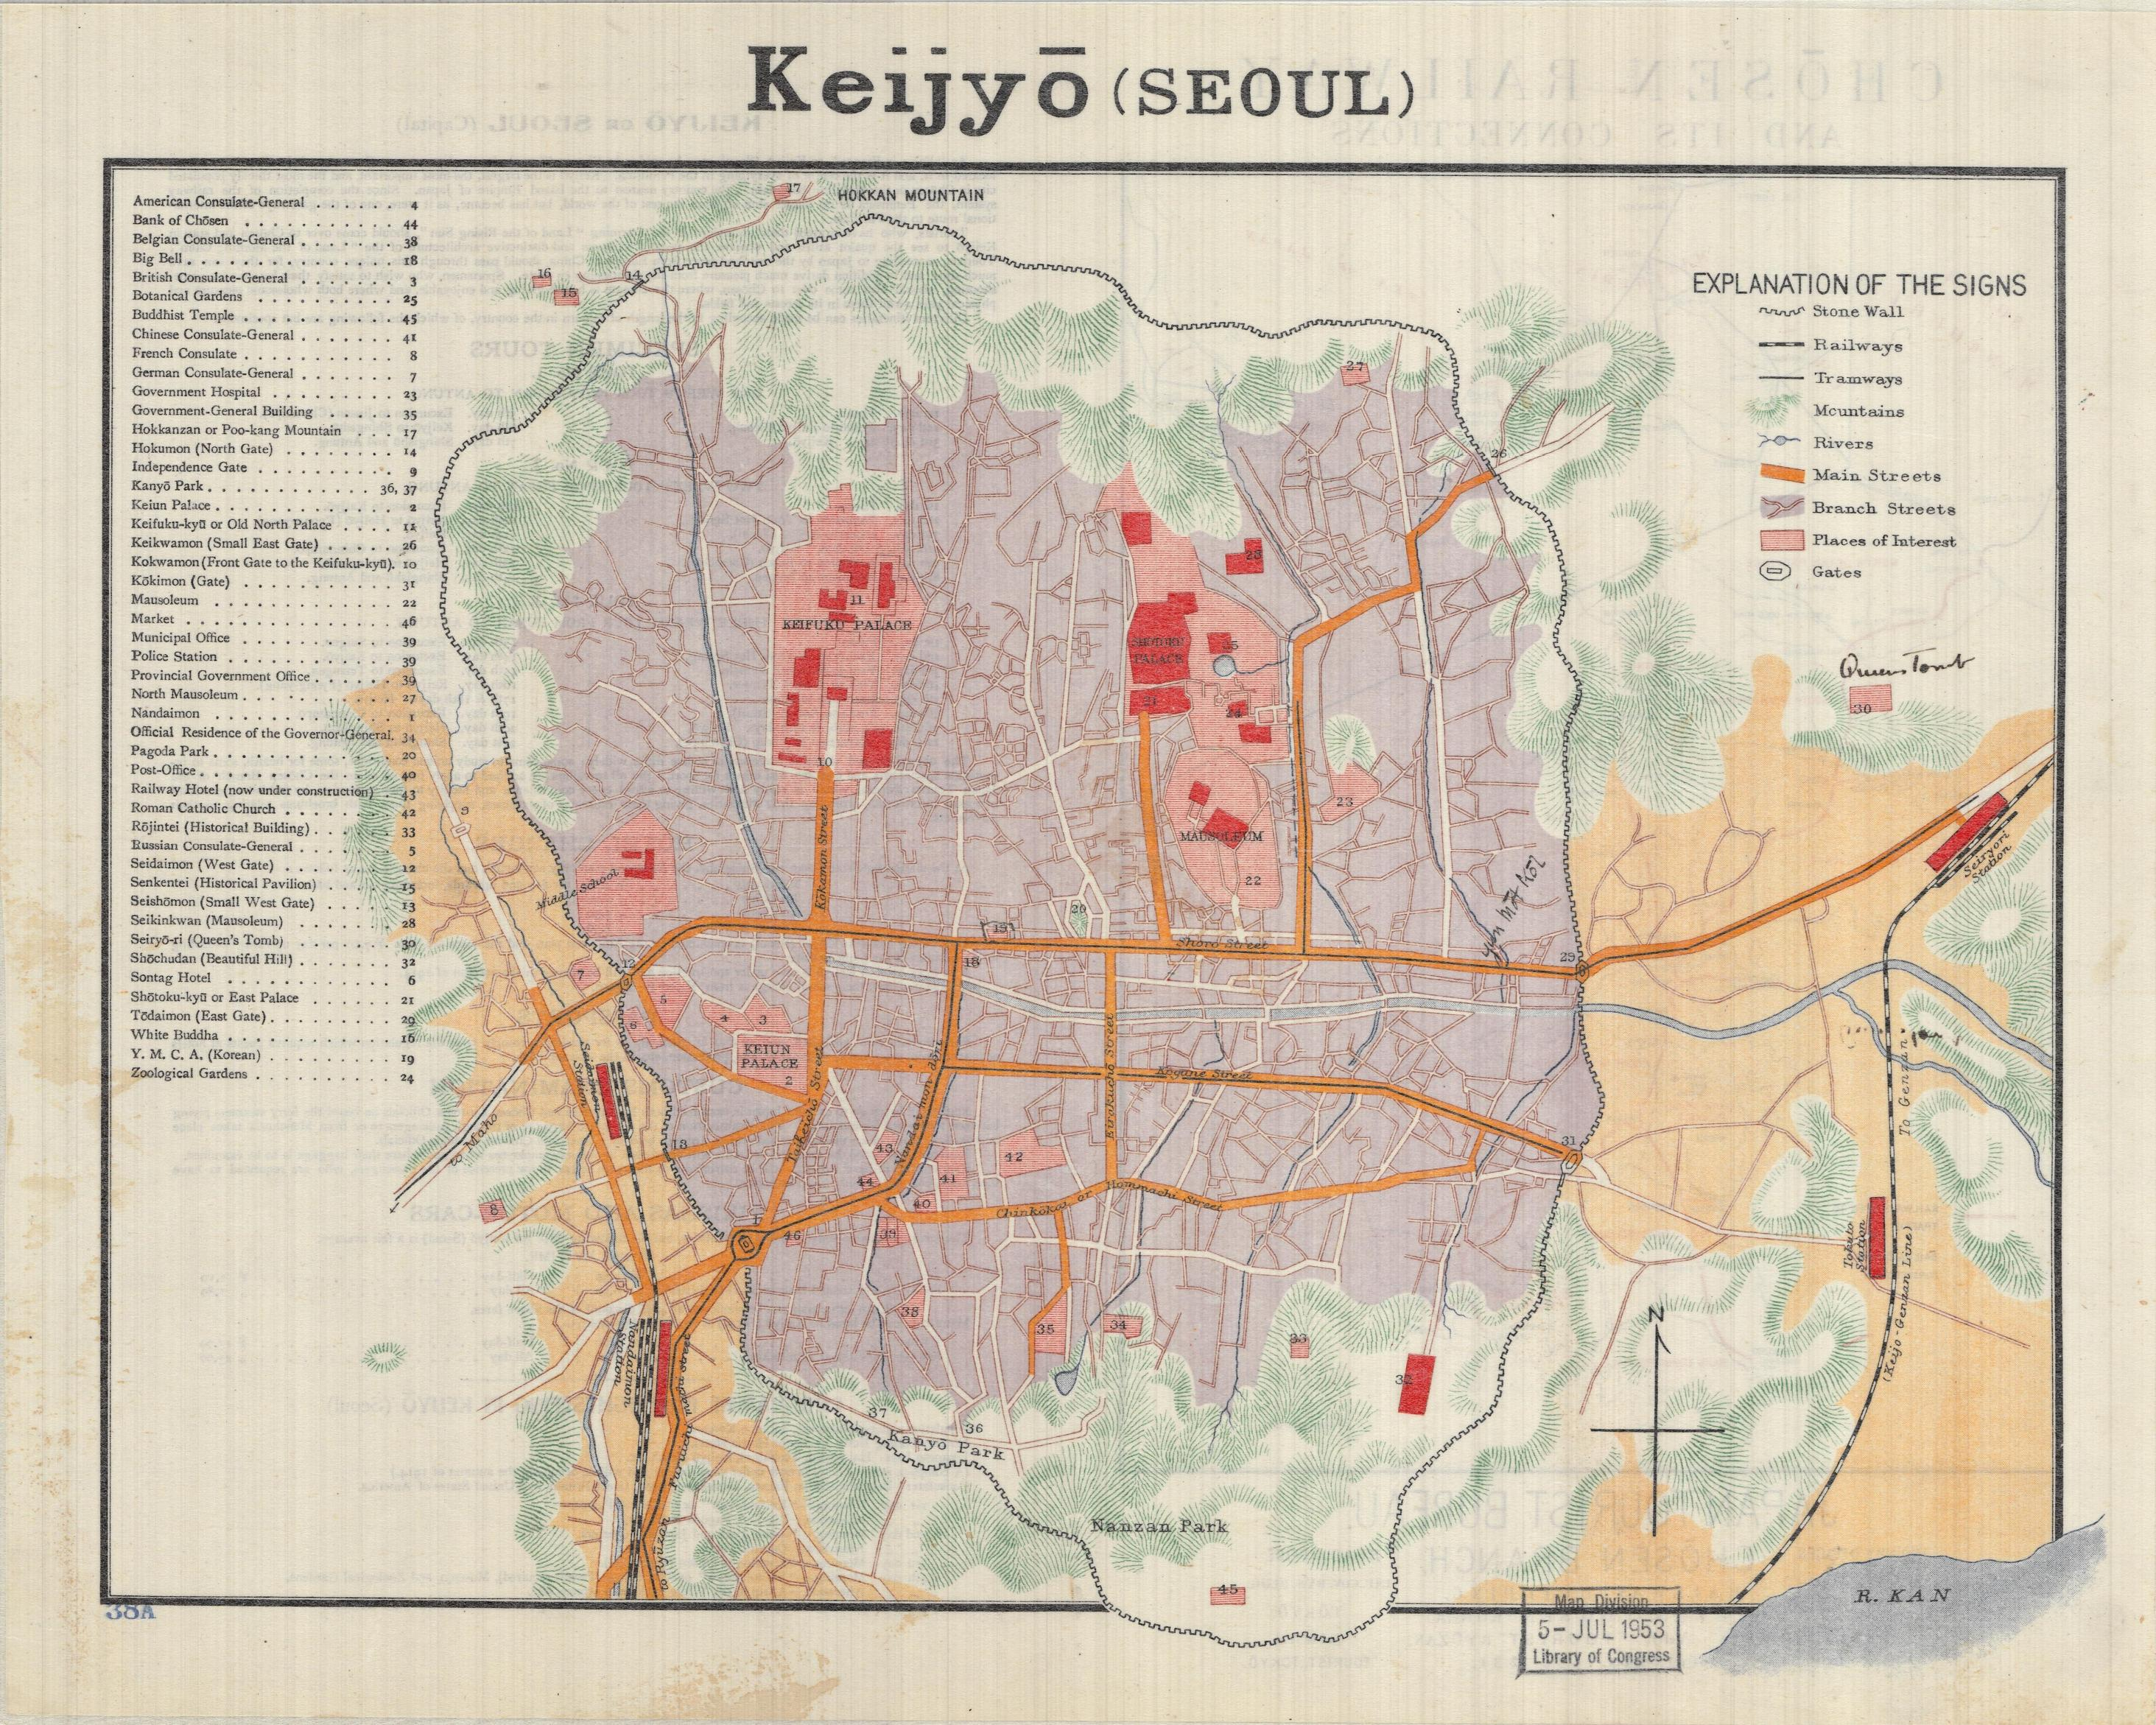 Maps Of Seoul South Korea Under Japanese Occupation